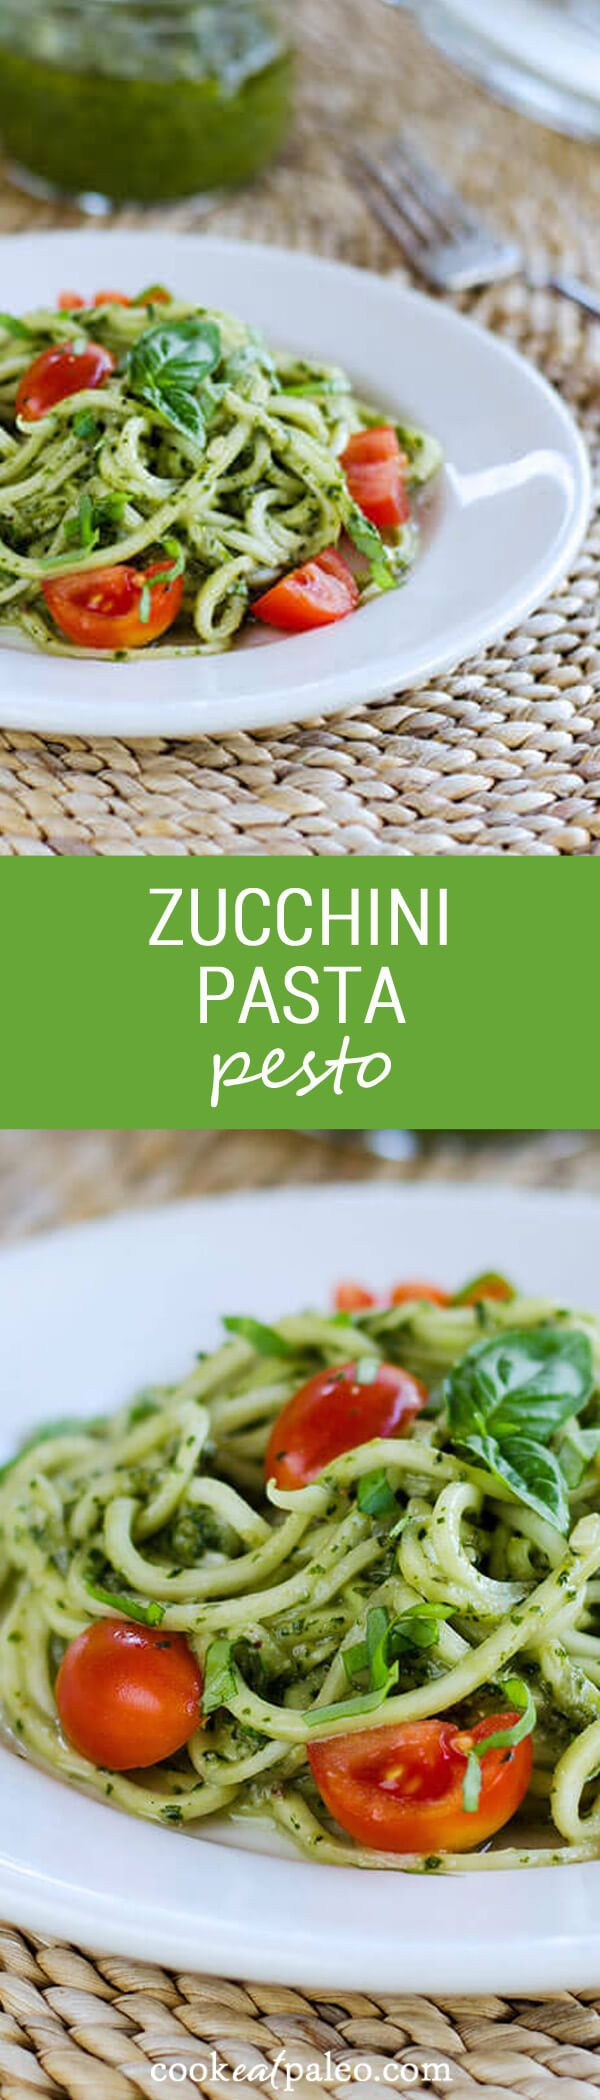 With fresh basil pesto, homegrown zucchini and tomatoes, this quick and easy zucchini pasta pesto is paleo, gluten-free, and dairy-free. ~ http://cookeatpaleo.com http://cookeatpaleo.com/zucchini-pasta-pesto/